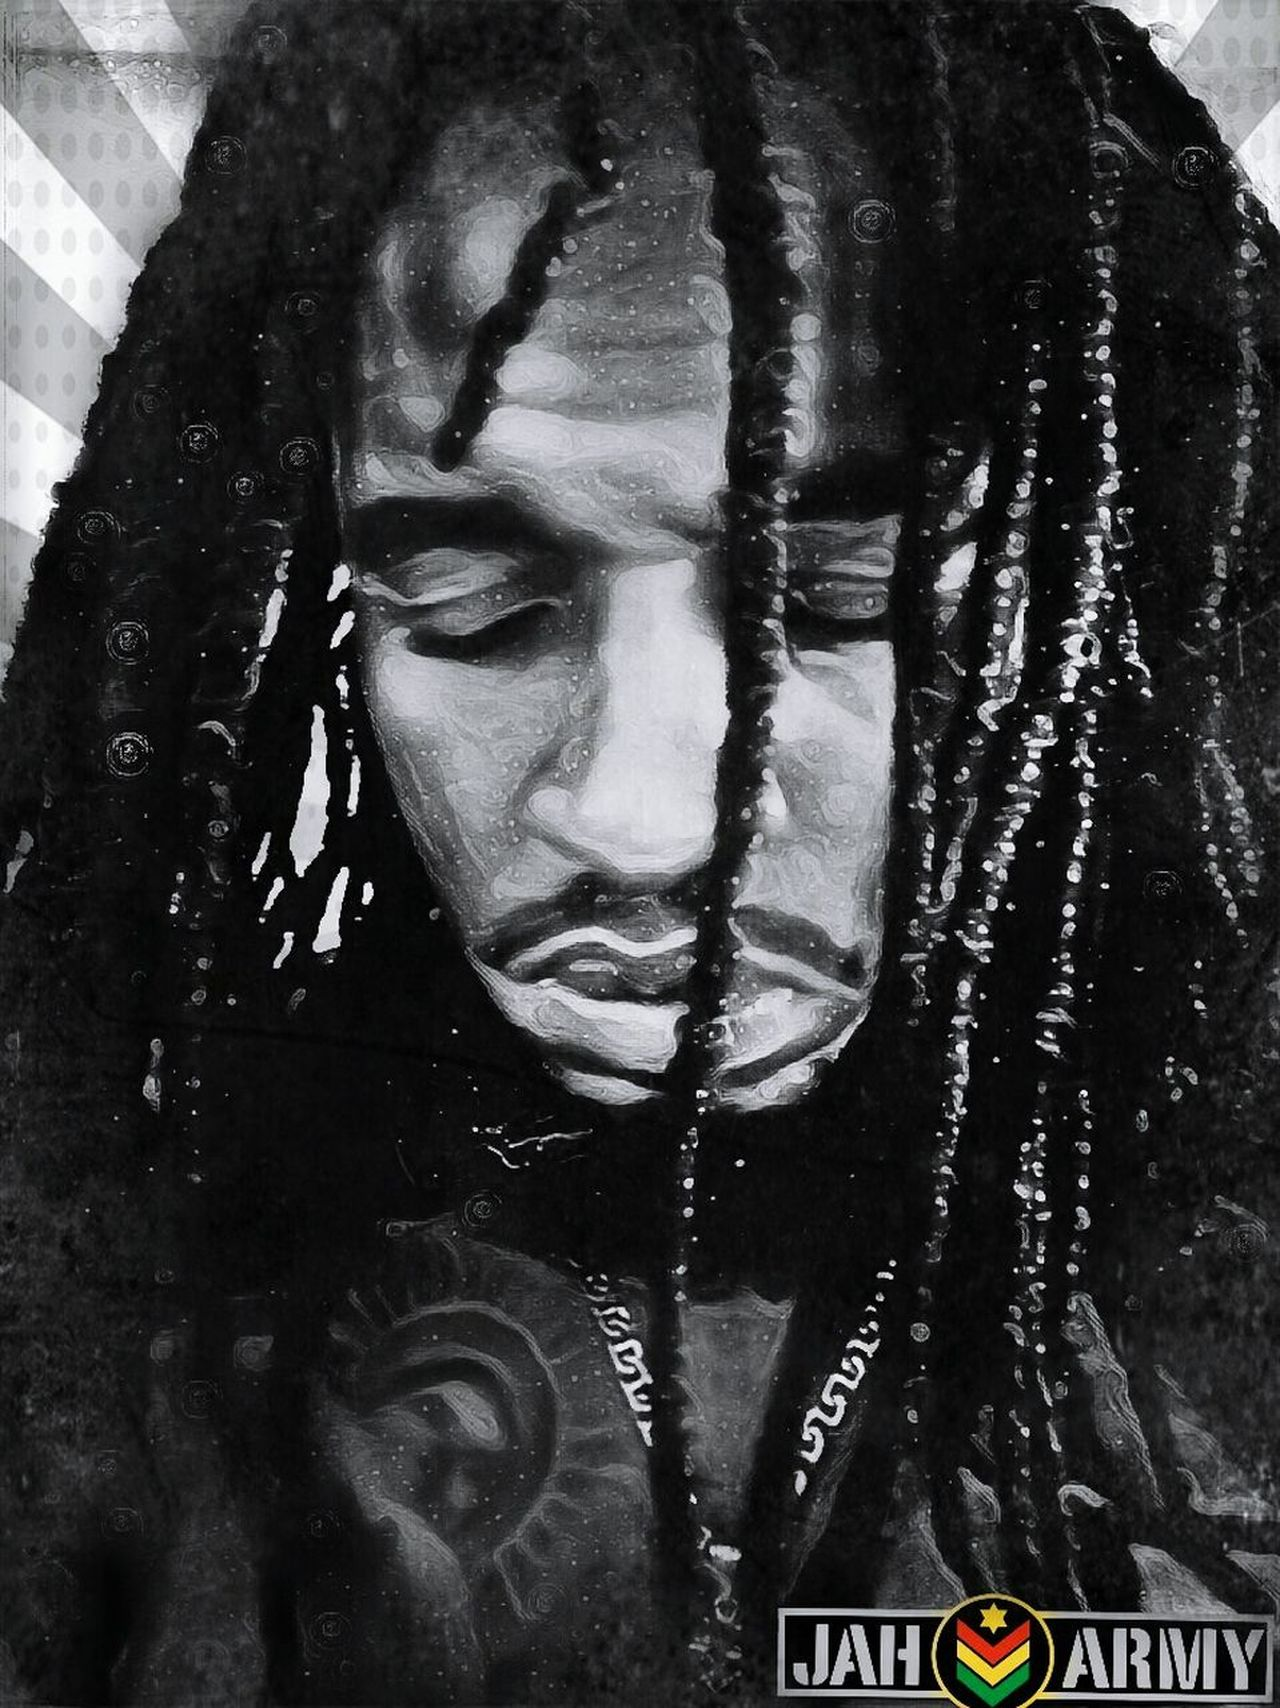 Headshot People Human Face Looking Down Portrait My Unique Style One Love❤ RASTA Creativity Taking Photos From My Point Of View Bad Boy  Jamaican ThatsMe Thats Me  Man RastaRude Close-up Tranquility Rasta Rude